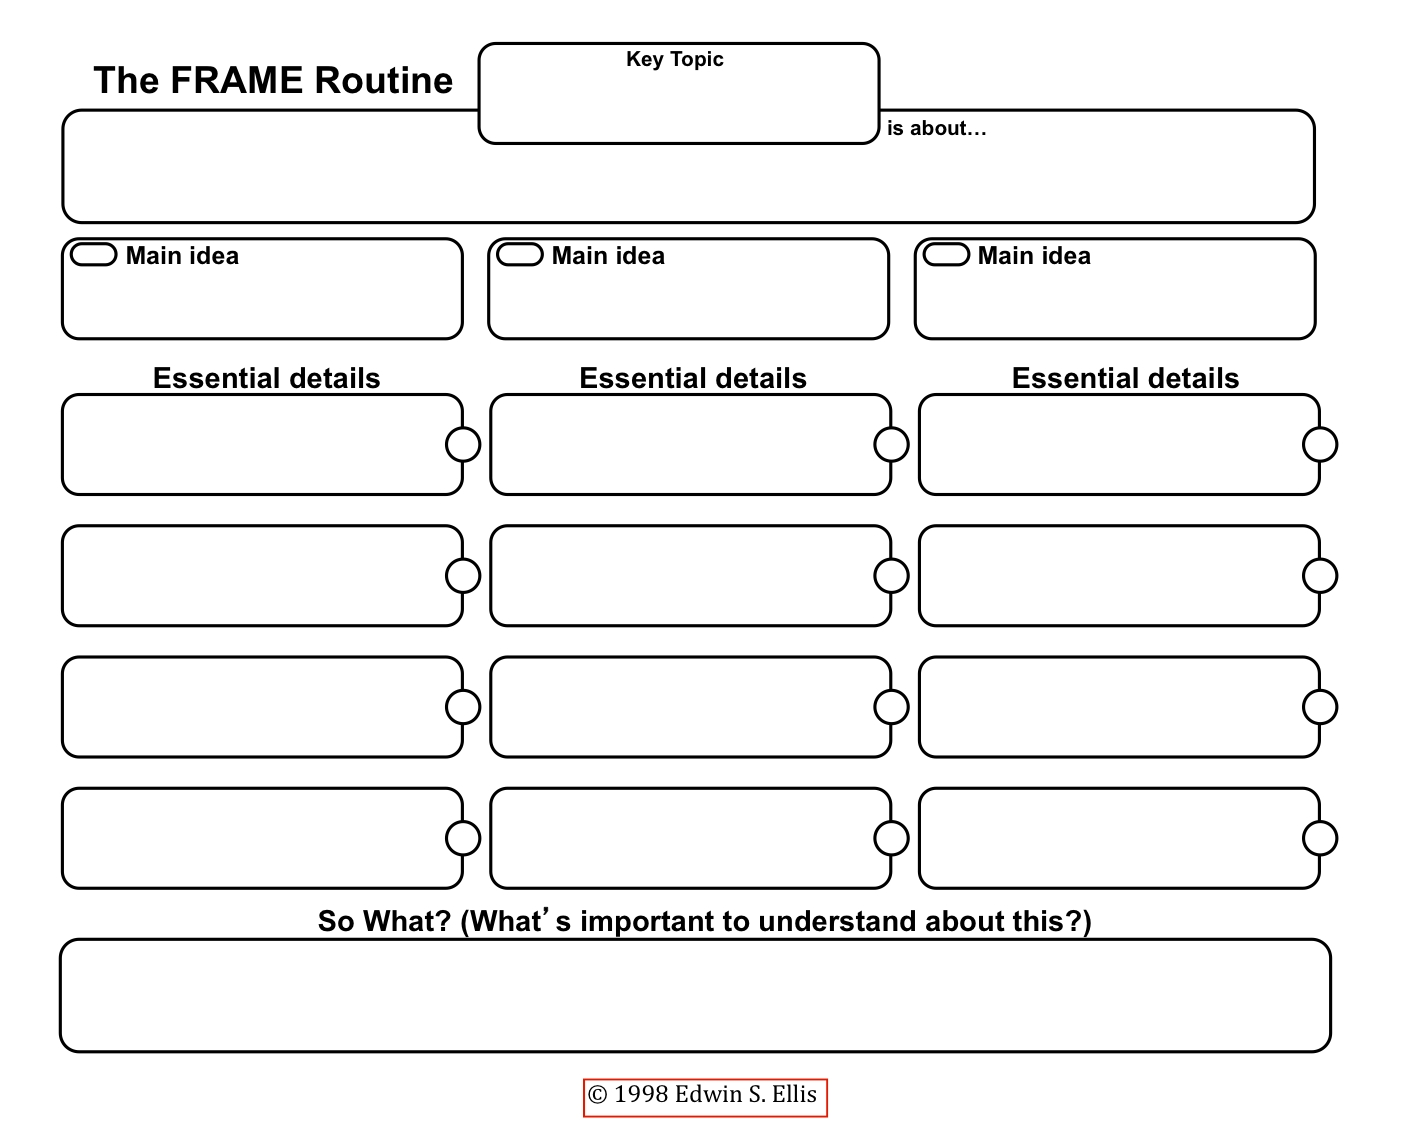 10 Wonderful Main Idea Graphic Organizer Printable real teachers learn graphic organizers the framing routine 1